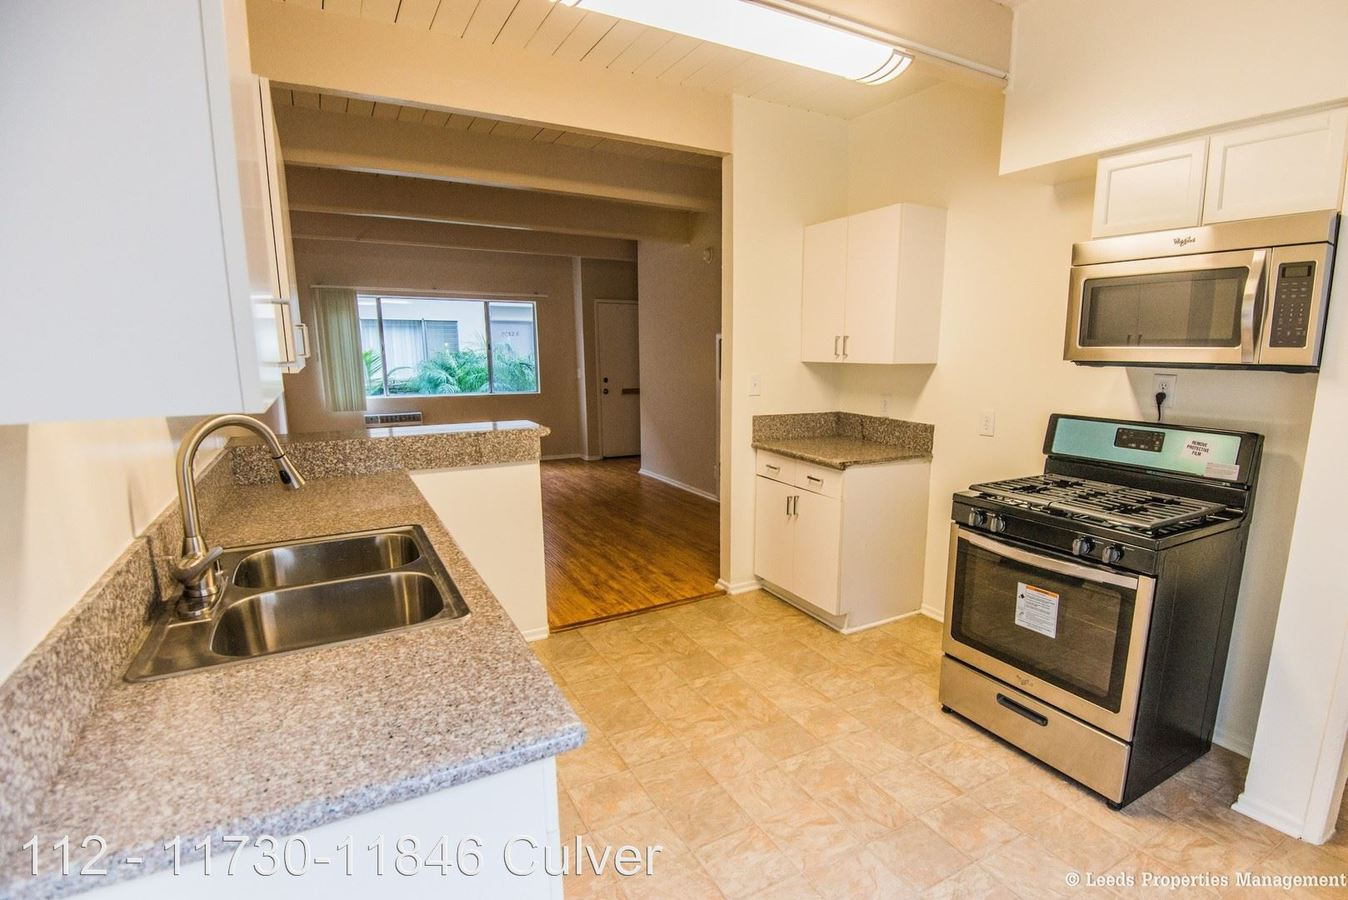 2 Bedrooms 1 Bathroom Apartment for rent at 11730-11846 Culver Blvd. in Los Angeles, CA